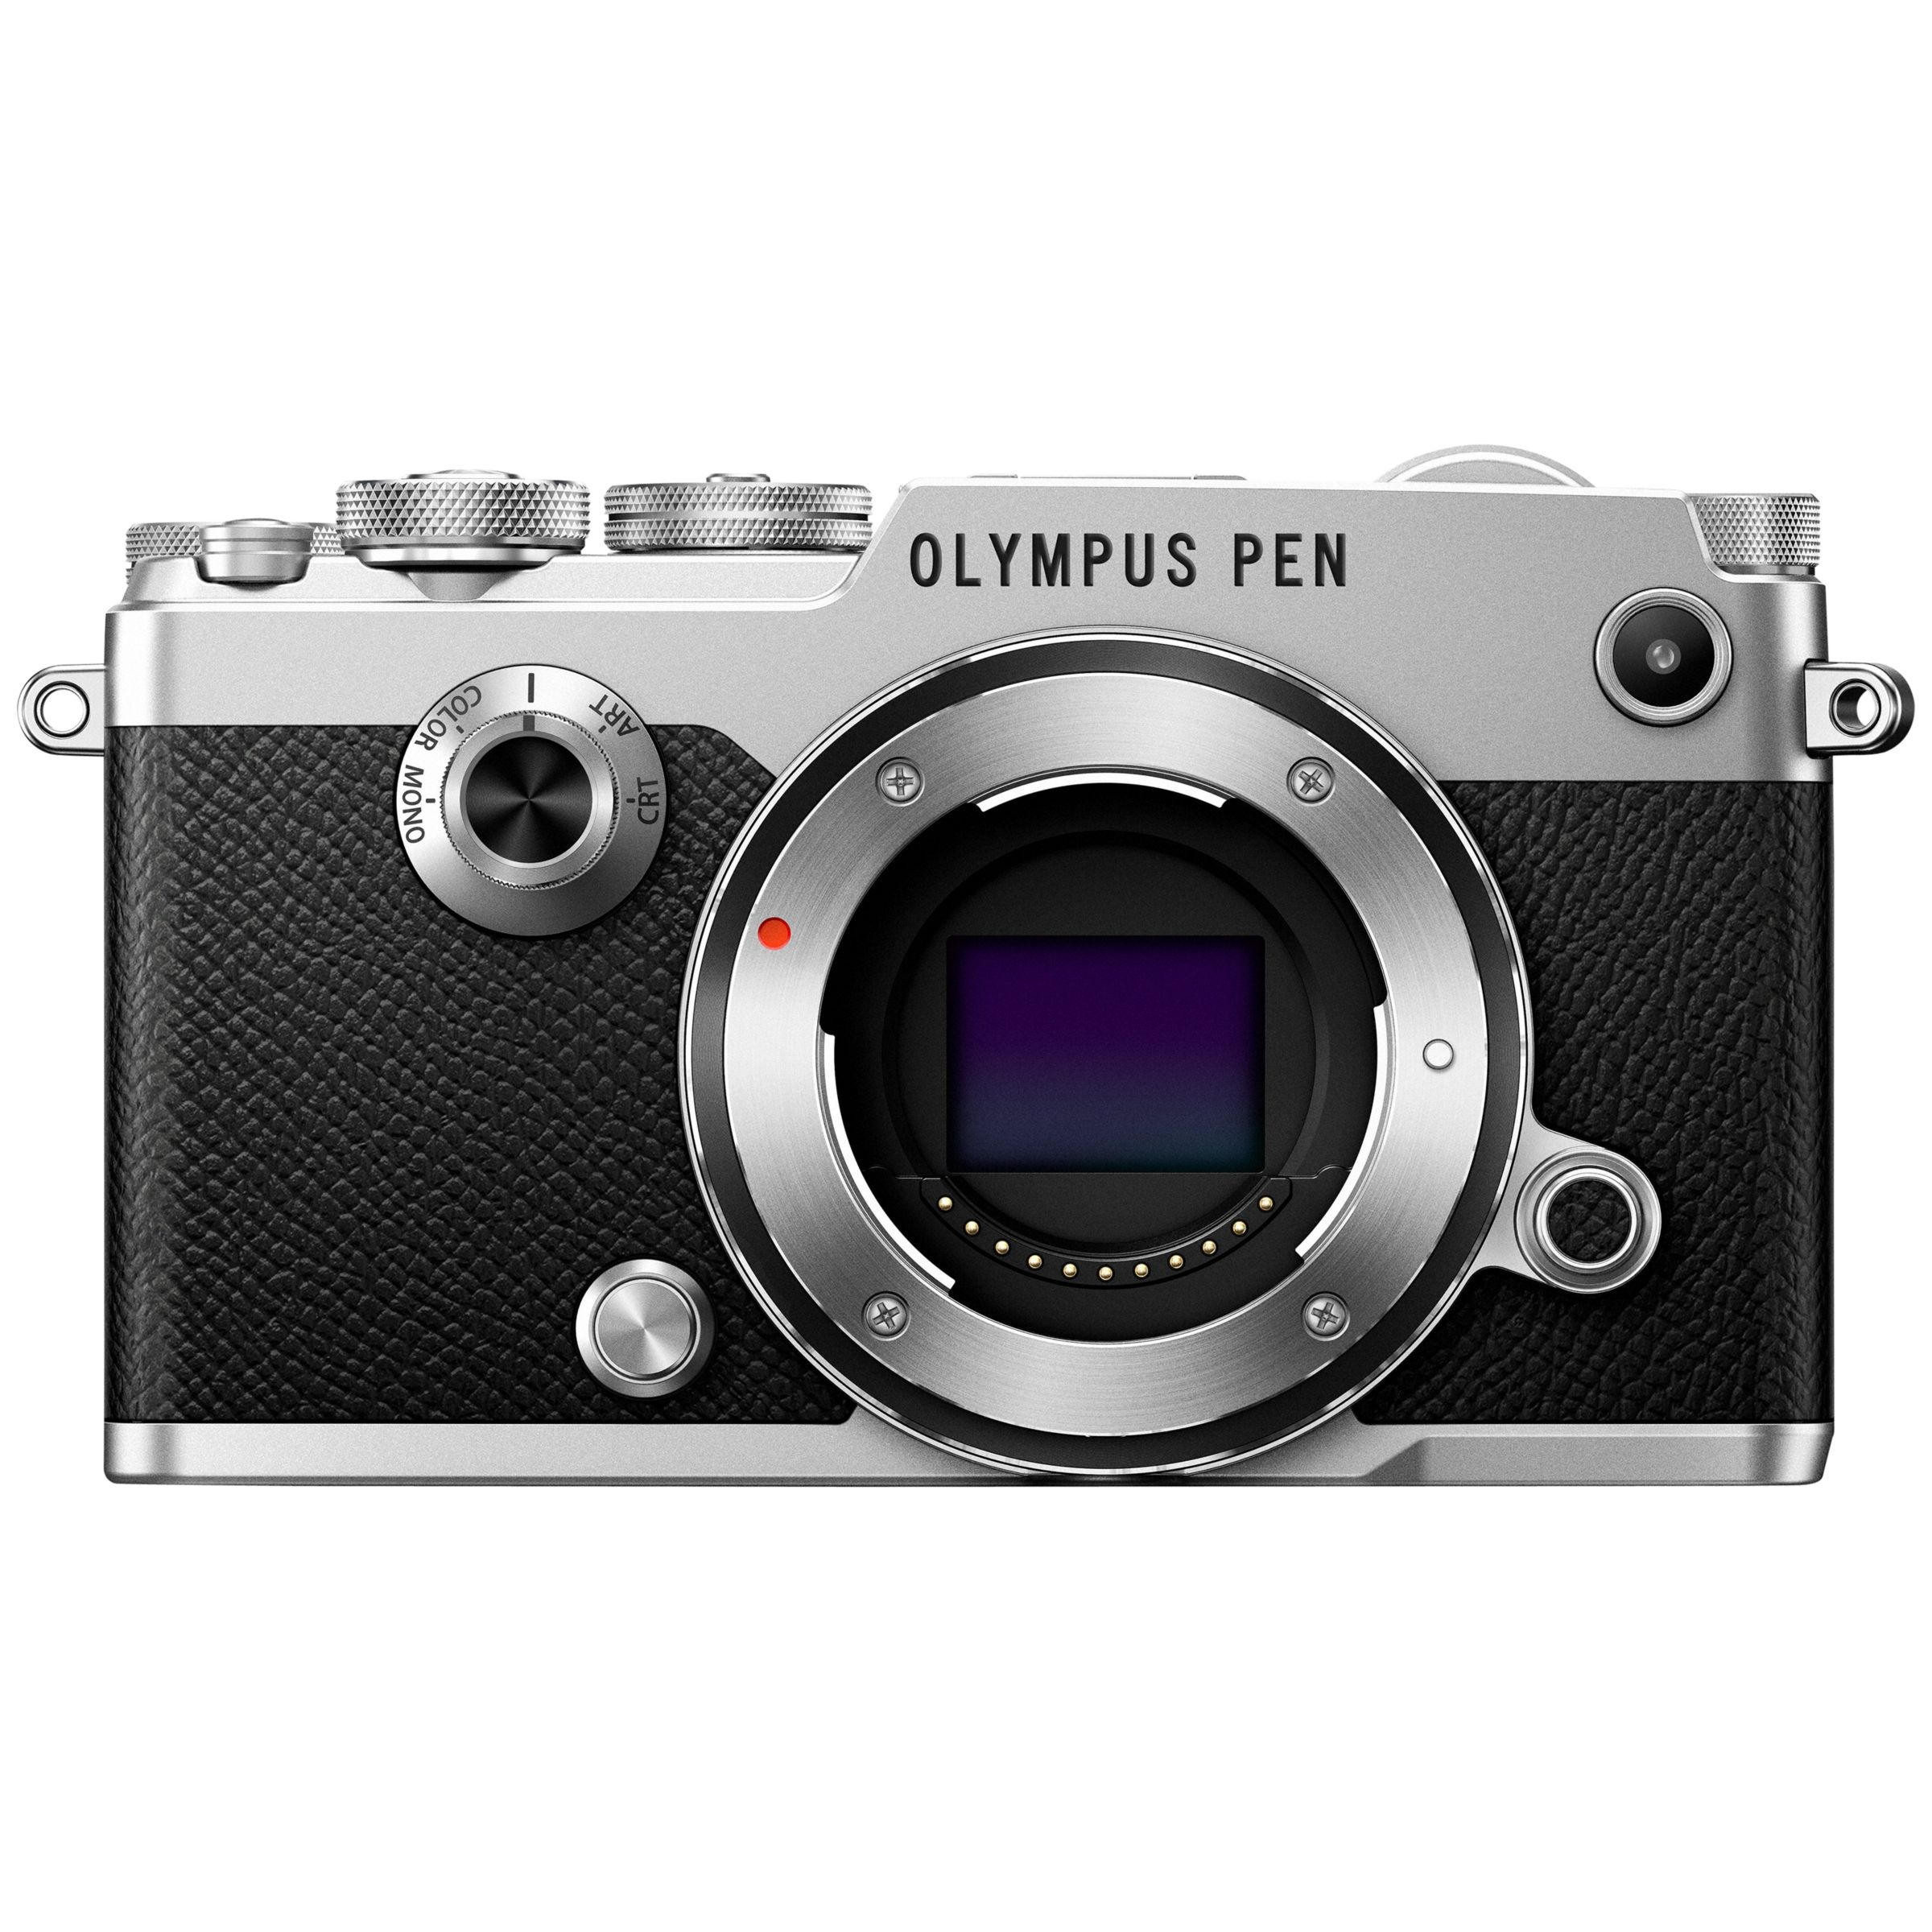 Olympus Olympus Pen F Compact System Camera, HD 1080p, 20.3MP, Wi-Fi, Front Creative Dial, 5-Axis IS, 3 Vari-Angle Touch Monitor, Body Only